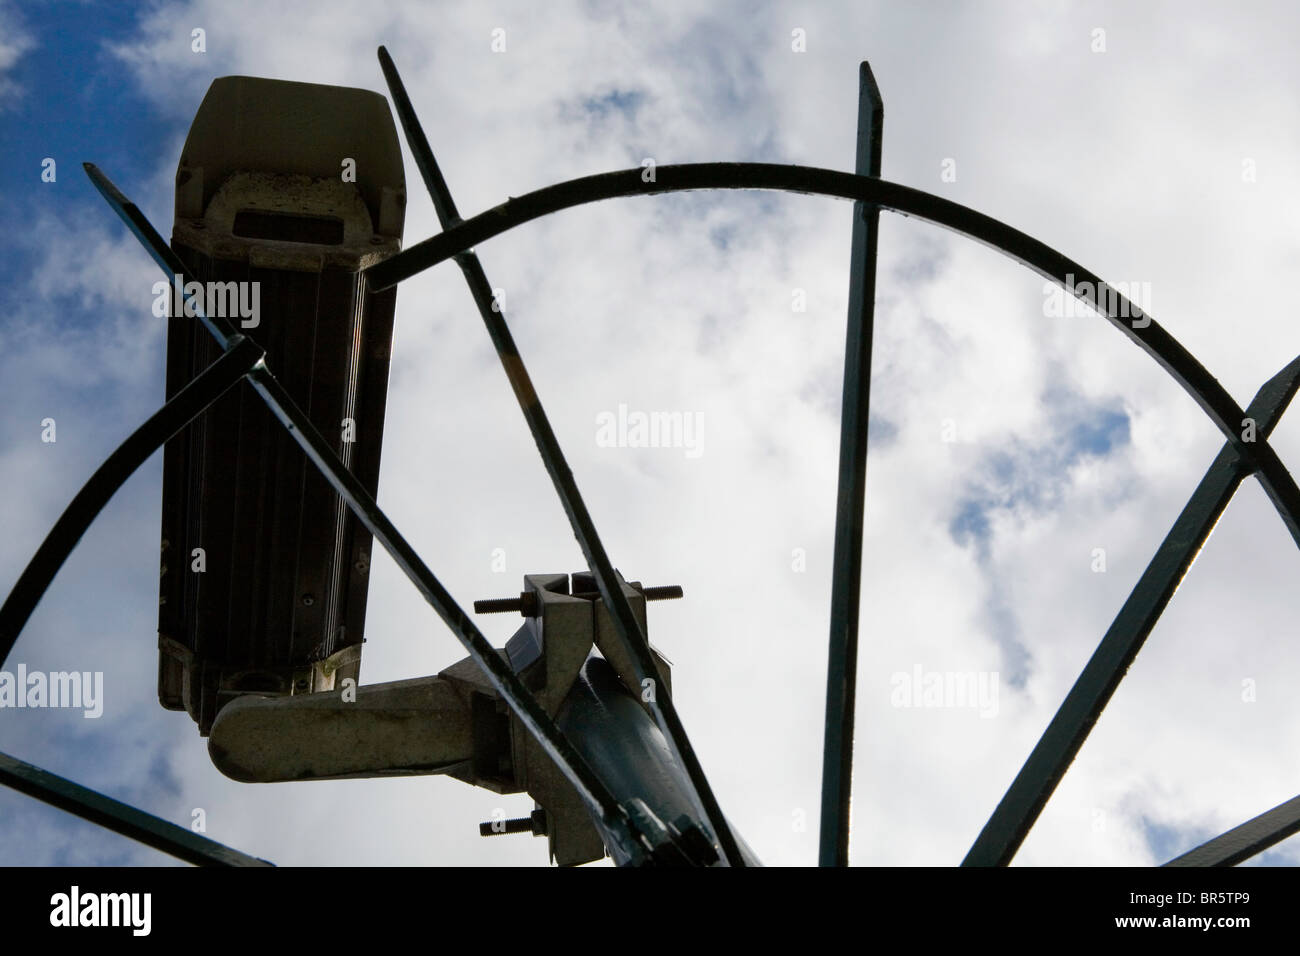 Closed Circuit Television CCTV camera. Surveillance, which will be relayed to a central control in London. Stock Photo